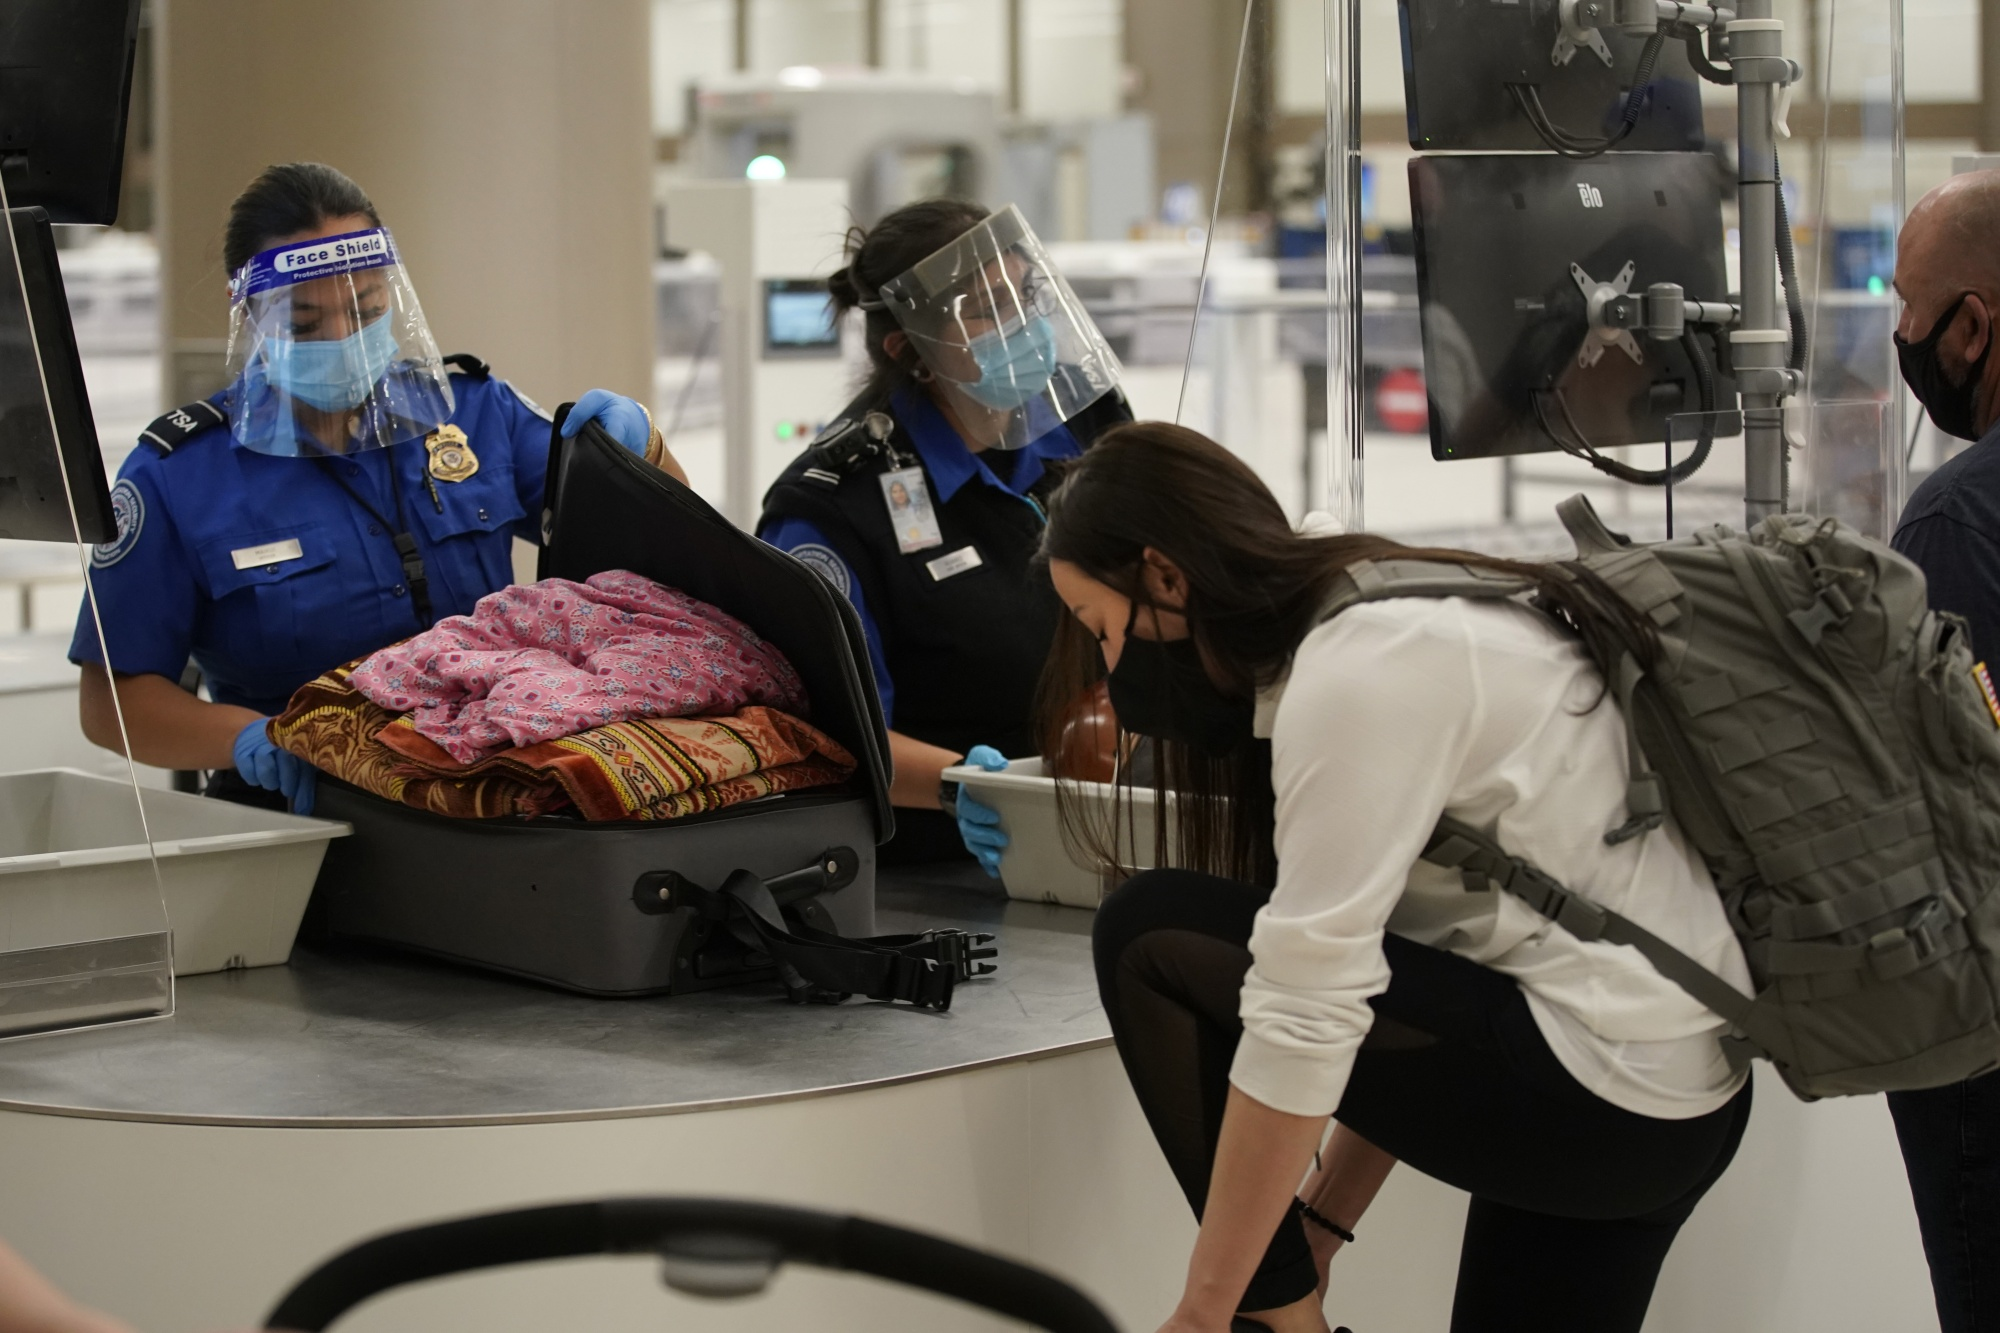 TSAagents check the luggage of a travleres at the security screening center at theSalt Lake City International Airport in Salt Lake City, Utah, on Sept. 15.